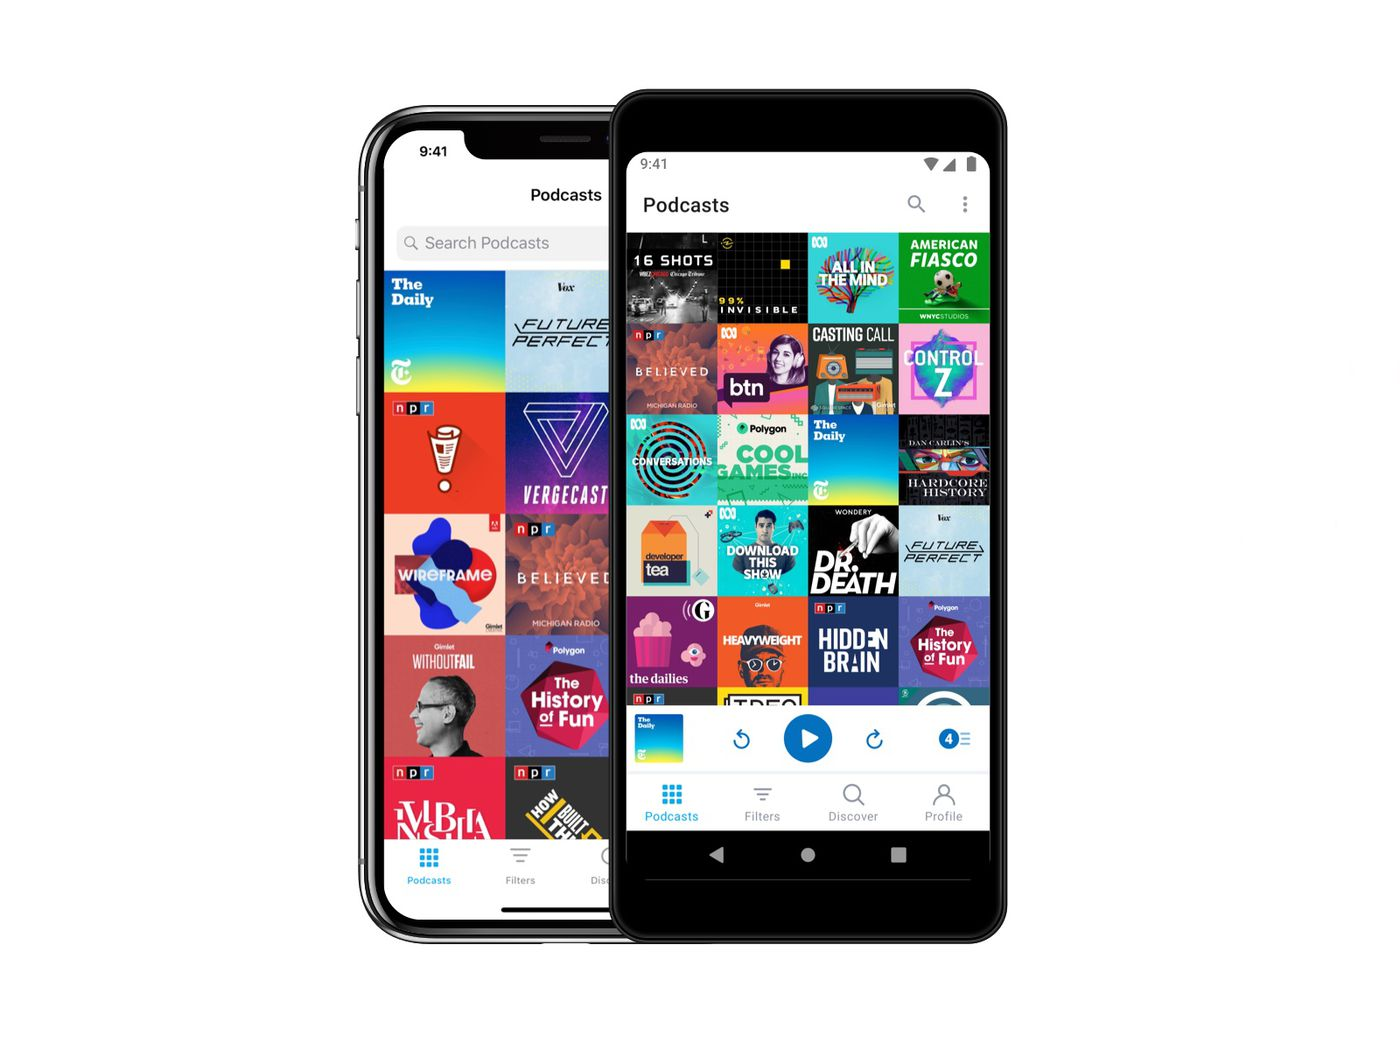 One of the best podcast apps, Pocket Casts, just got a big